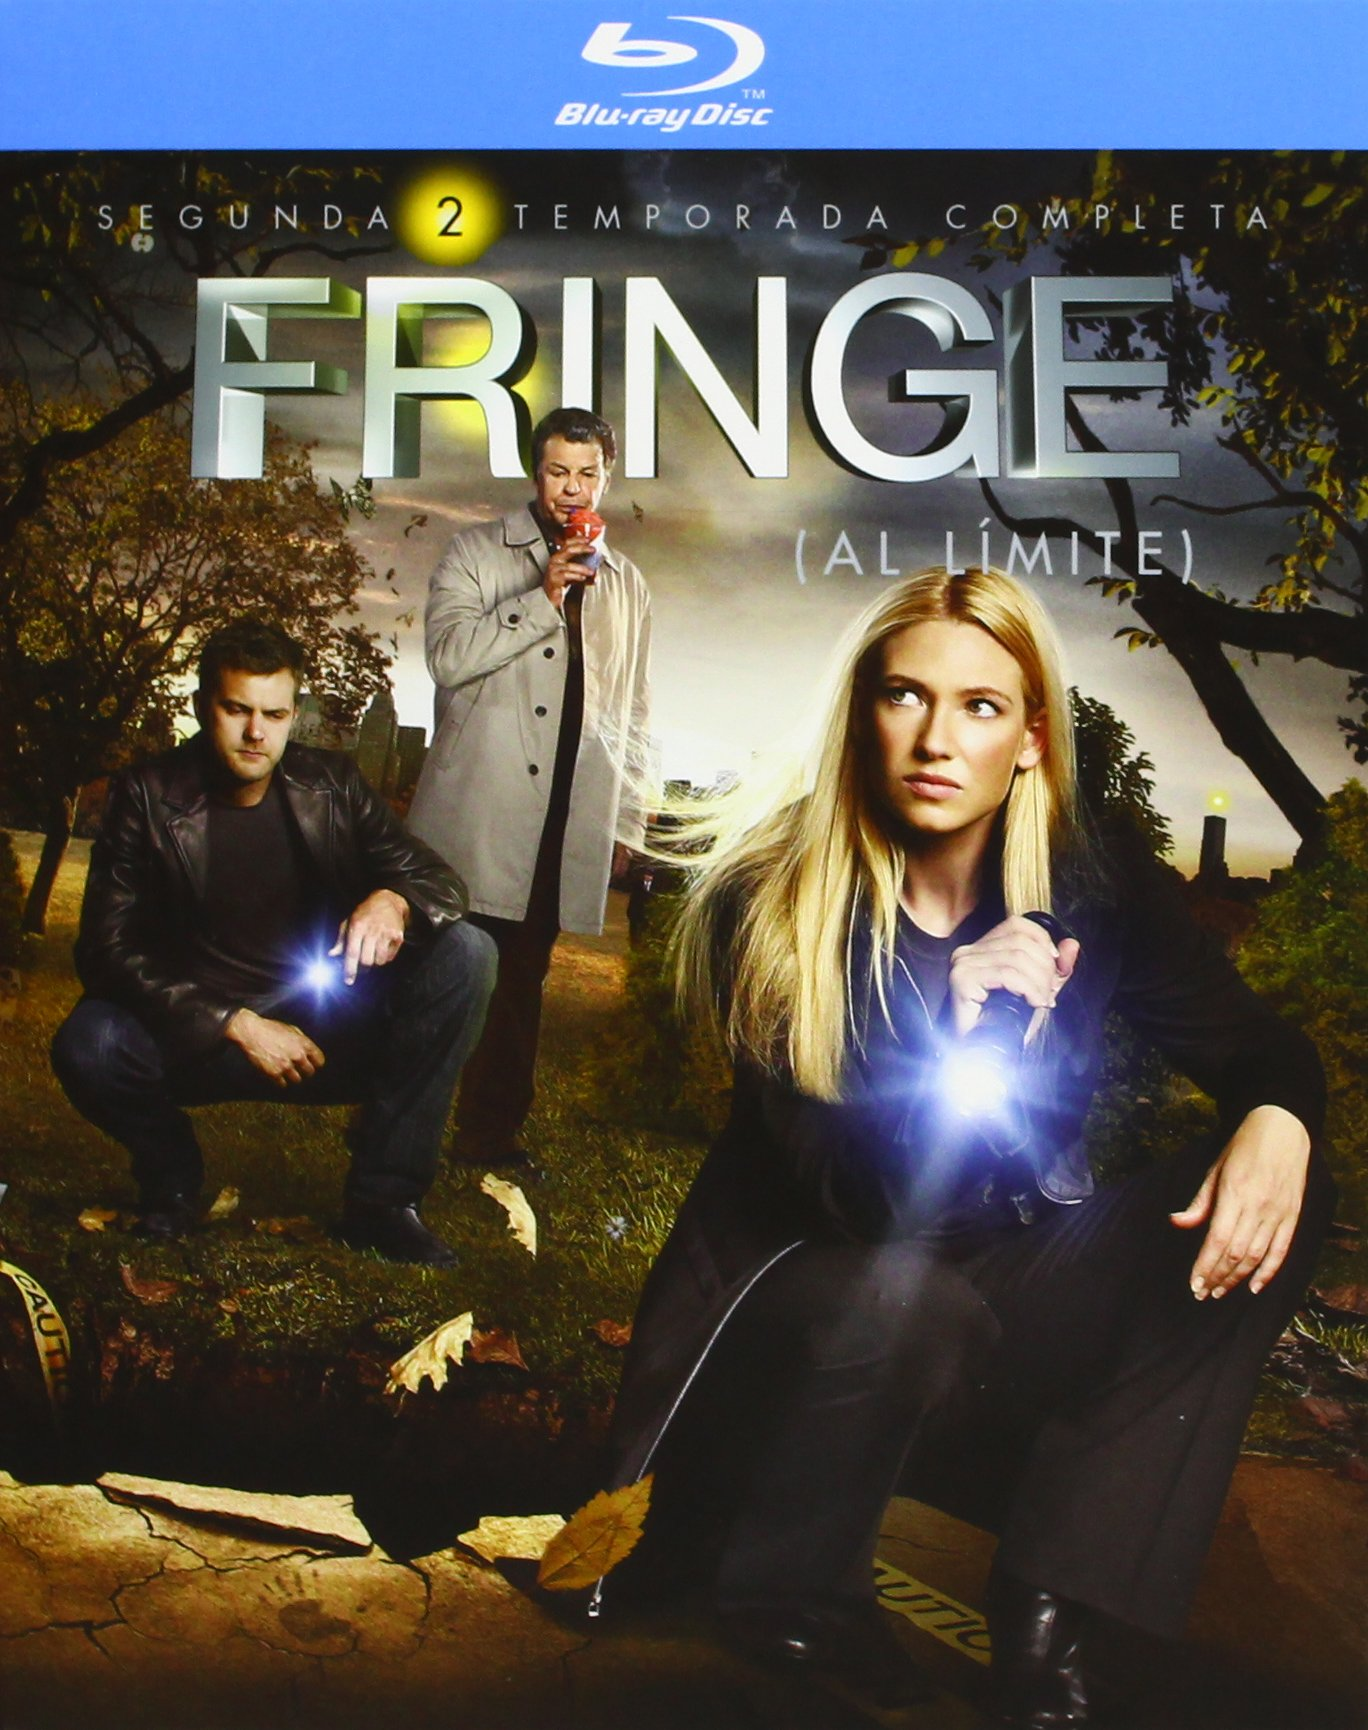 TV- FRINGE S2 - BD (European Region B2) by